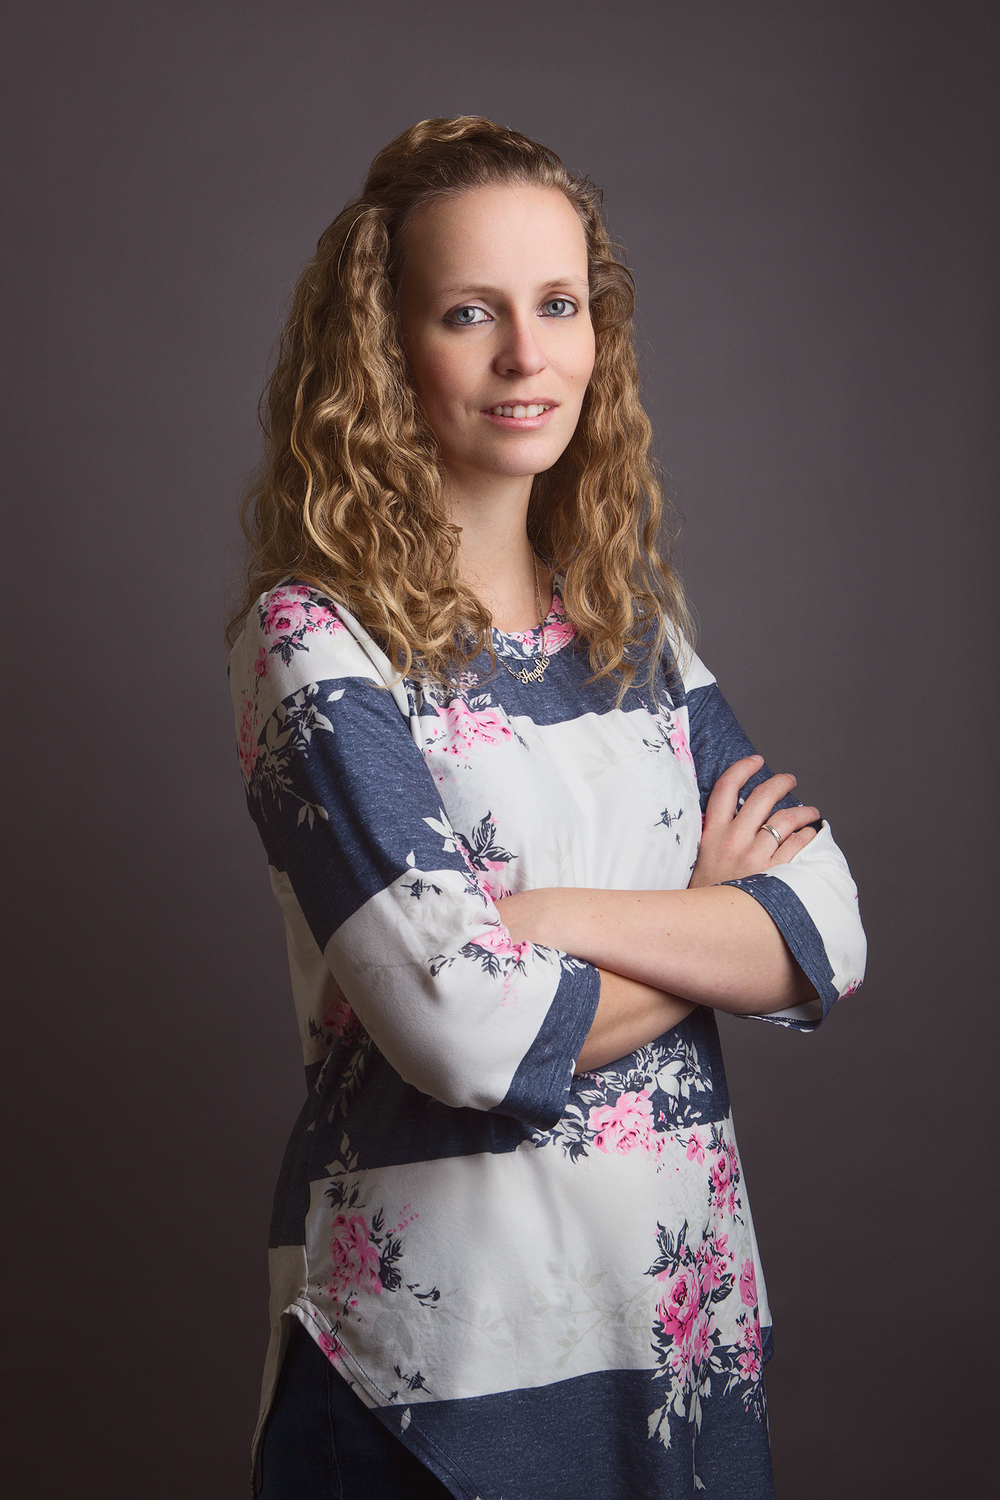 """Angela Visser from Lizzmedia photographed by Dennis Veldman during the first edition of """"Corporate Portrait Thursday"""""""